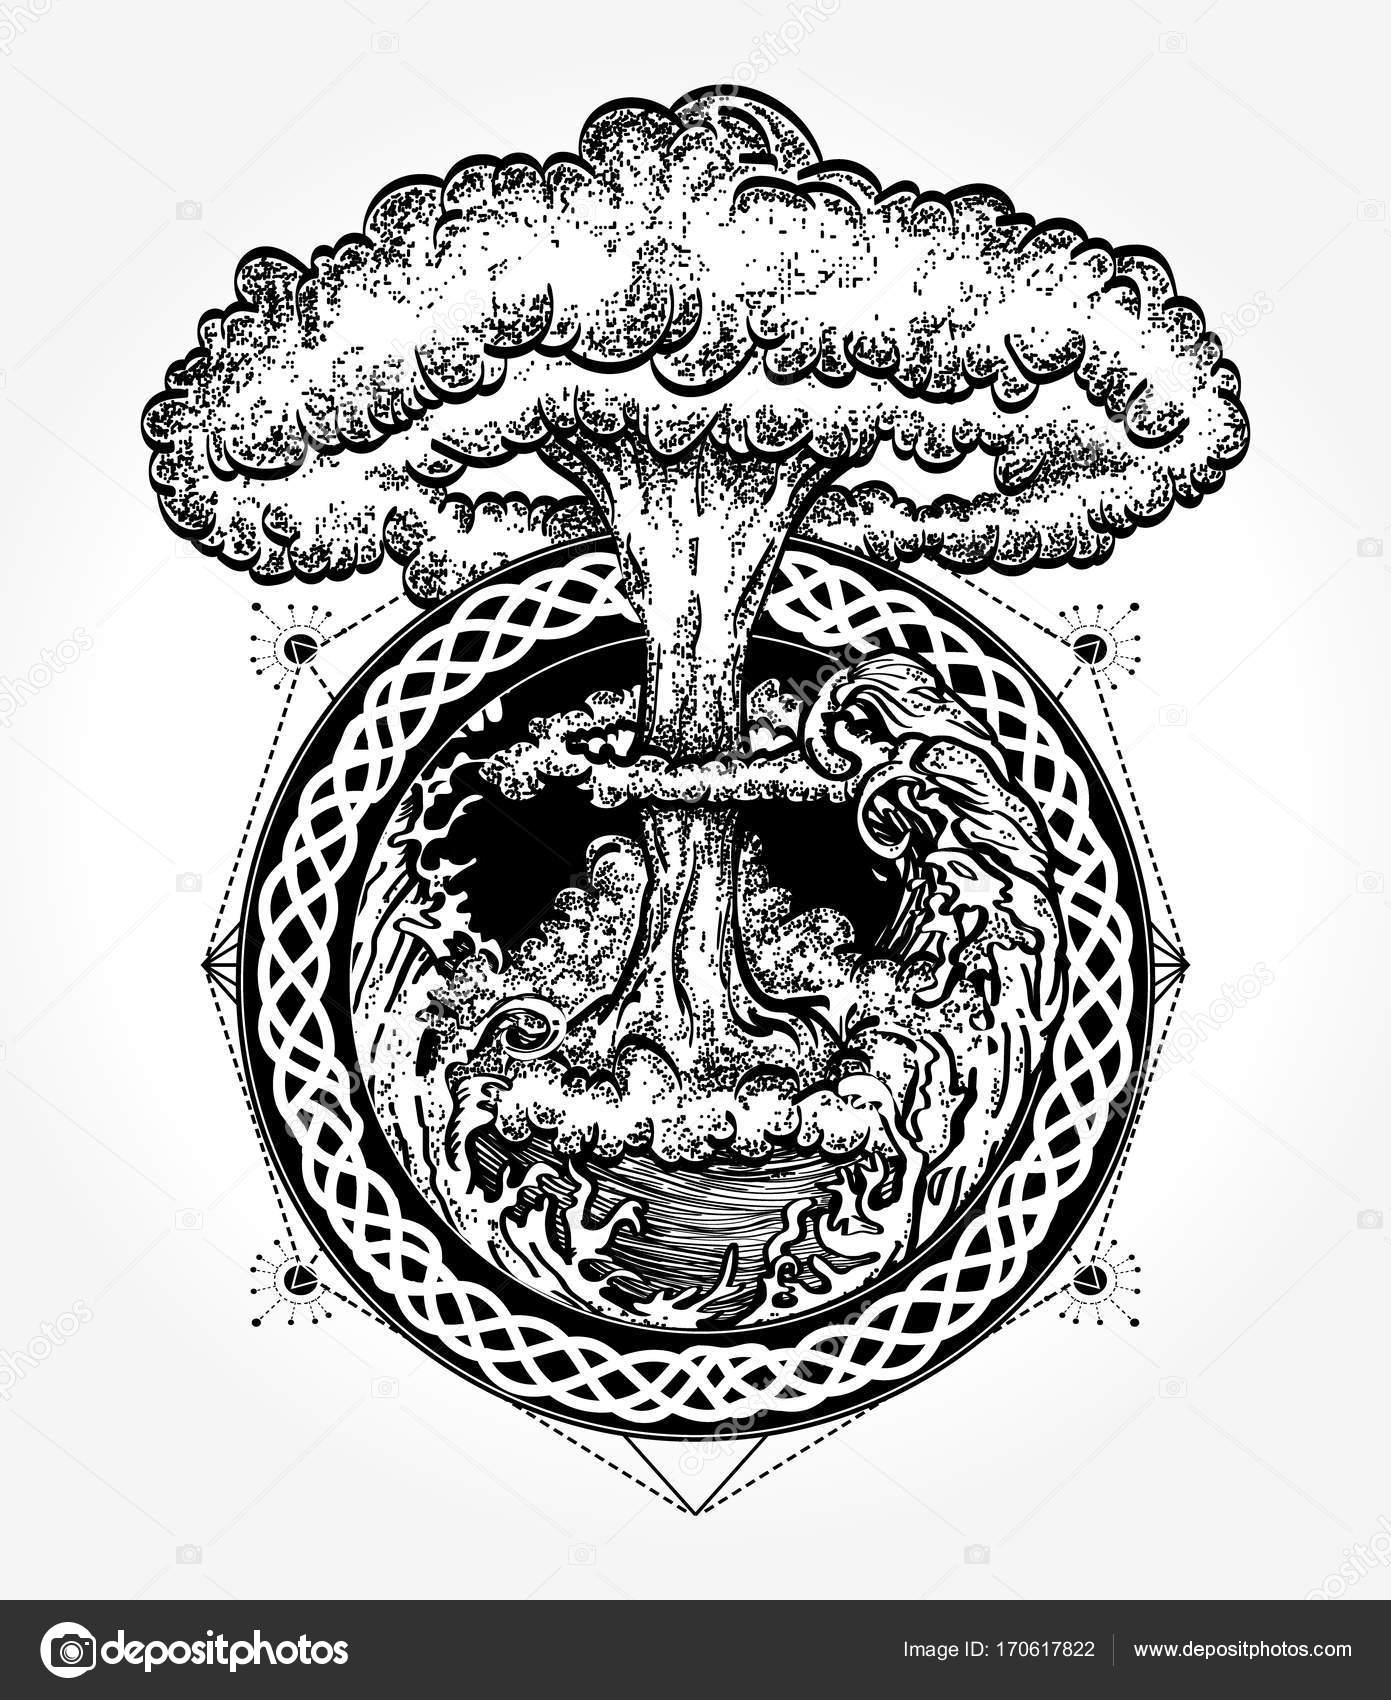 Nuclear explosion tattoo art symbol of destruction and death nuclear explosion tattoo art symbol of destruction and death end of world last war tsunami and nuclear explosion t shirt design vector by intueri biocorpaavc